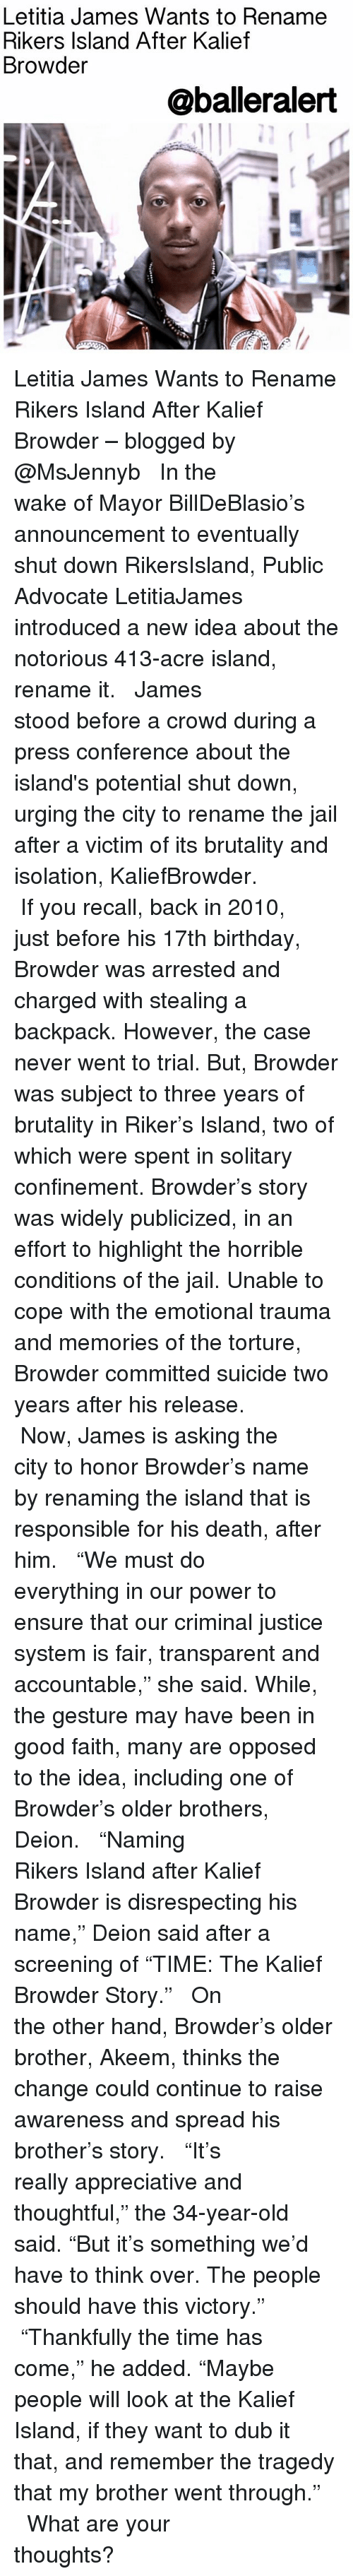 """Birthday, Jail, and Memes: Letitia James Wants to Rename  Rikers Island After Kalief  Browder  @balleralert Letitia James Wants to Rename Rikers Island After Kalief Browder – blogged by @MsJennyb ⠀⠀⠀⠀⠀⠀⠀ ⠀⠀⠀⠀⠀⠀⠀ In the wake of Mayor BillDeBlasio's announcement to eventually shut down RikersIsland, Public Advocate LetitiaJames introduced a new idea about the notorious 413-acre island, rename it. ⠀⠀⠀⠀⠀⠀⠀ ⠀⠀⠀⠀⠀⠀⠀ James stood before a crowd during a press conference about the island's potential shut down, urging the city to rename the jail after a victim of its brutality and isolation, KaliefBrowder. ⠀⠀⠀⠀⠀⠀⠀ ⠀⠀⠀⠀⠀⠀⠀ If you recall, back in 2010, just before his 17th birthday, Browder was arrested and charged with stealing a backpack. However, the case never went to trial. But, Browder was subject to three years of brutality in Riker's Island, two of which were spent in solitary confinement. Browder's story was widely publicized, in an effort to highlight the horrible conditions of the jail. Unable to cope with the emotional trauma and memories of the torture, Browder committed suicide two years after his release. ⠀⠀⠀⠀⠀⠀⠀ ⠀⠀⠀⠀⠀⠀⠀ Now, James is asking the city to honor Browder's name by renaming the island that is responsible for his death, after him. ⠀⠀⠀⠀⠀⠀⠀ ⠀⠀⠀⠀⠀⠀⠀ """"We must do everything in our power to ensure that our criminal justice system is fair, transparent and accountable,"""" she said. While, the gesture may have been in good faith, many are opposed to the idea, including one of Browder's older brothers, Deion. ⠀⠀⠀⠀⠀⠀⠀ ⠀⠀⠀⠀⠀⠀⠀ """"Naming Rikers Island after Kalief Browder is disrespecting his name,"""" Deion said after a screening of """"TIME: The Kalief Browder Story."""" ⠀⠀⠀⠀⠀⠀⠀ ⠀⠀⠀⠀⠀⠀⠀ On the other hand, Browder's older brother, Akeem, thinks the change could continue to raise awareness and spread his brother's story. ⠀⠀⠀⠀⠀⠀⠀ ⠀⠀⠀⠀⠀⠀⠀ """"It's really appreciative and thoughtful,"""" the 34-year-old said. """"But it's something we'd have to think over. The people should have this victo"""